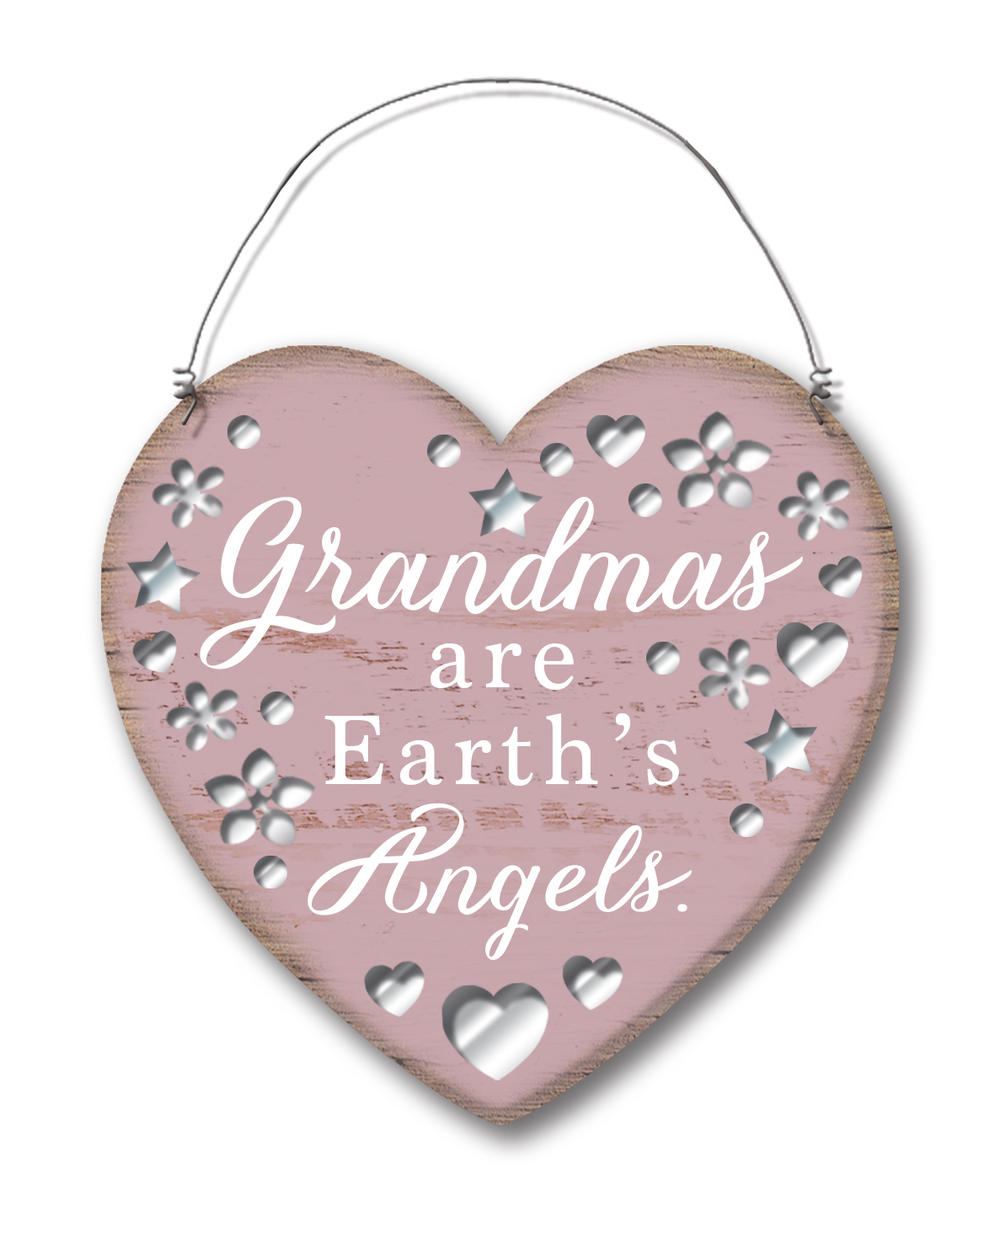 Grandma's Are Earth's Angels Hanging Heart Plaque